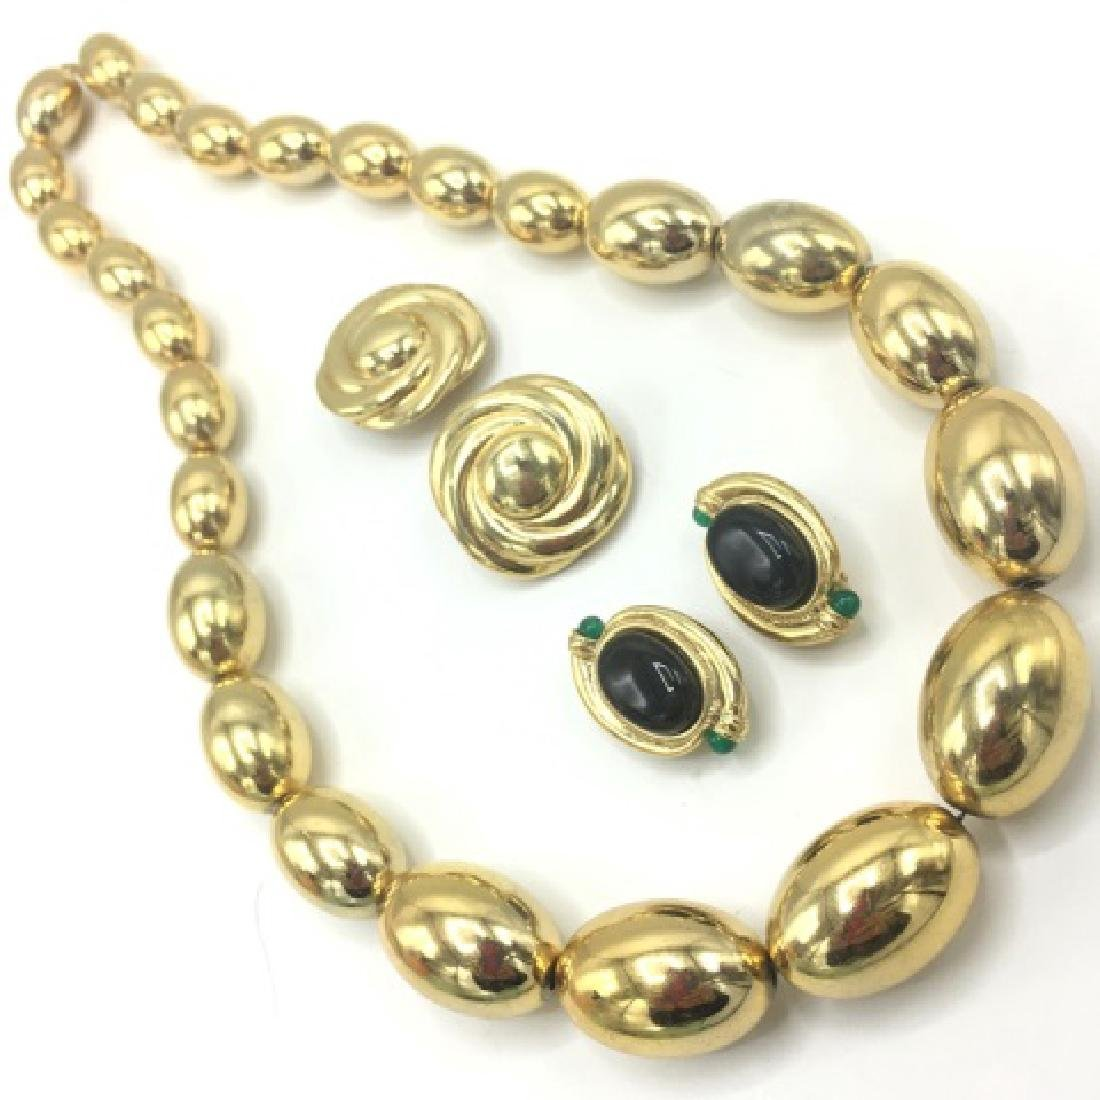 Vintage 1980s Gold Tone Costume Jewelry Set